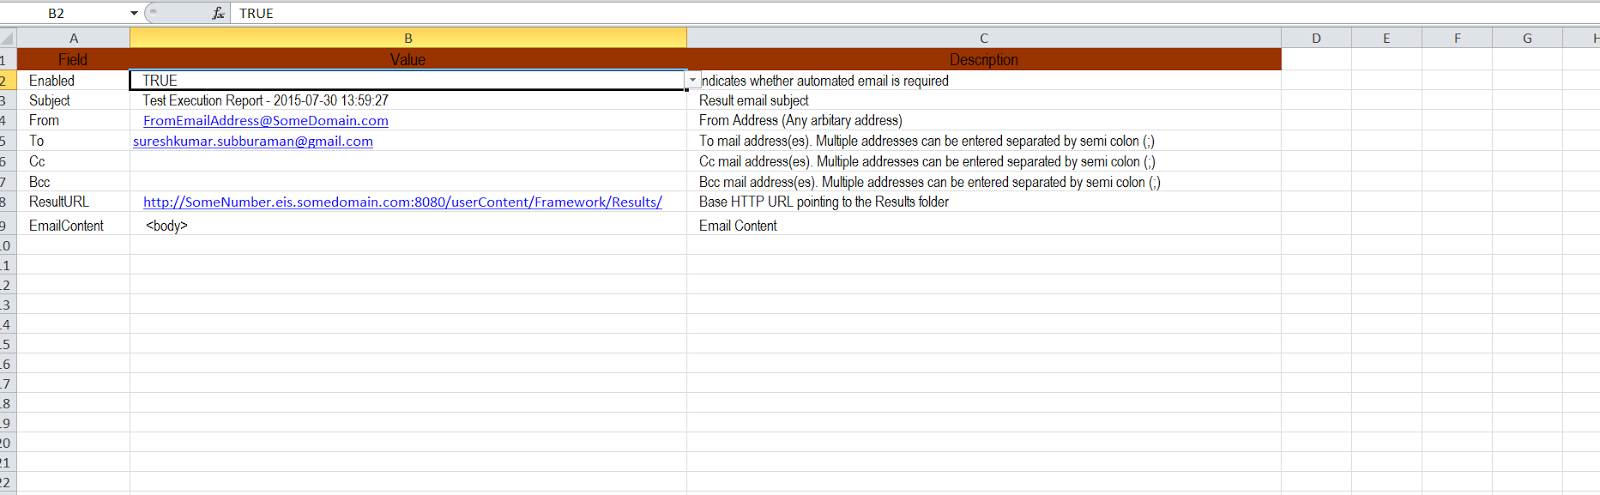 Soap ui overview first step is to have an excel sheet with following tabs input and email you can have sample fields in the email tab baditri Images